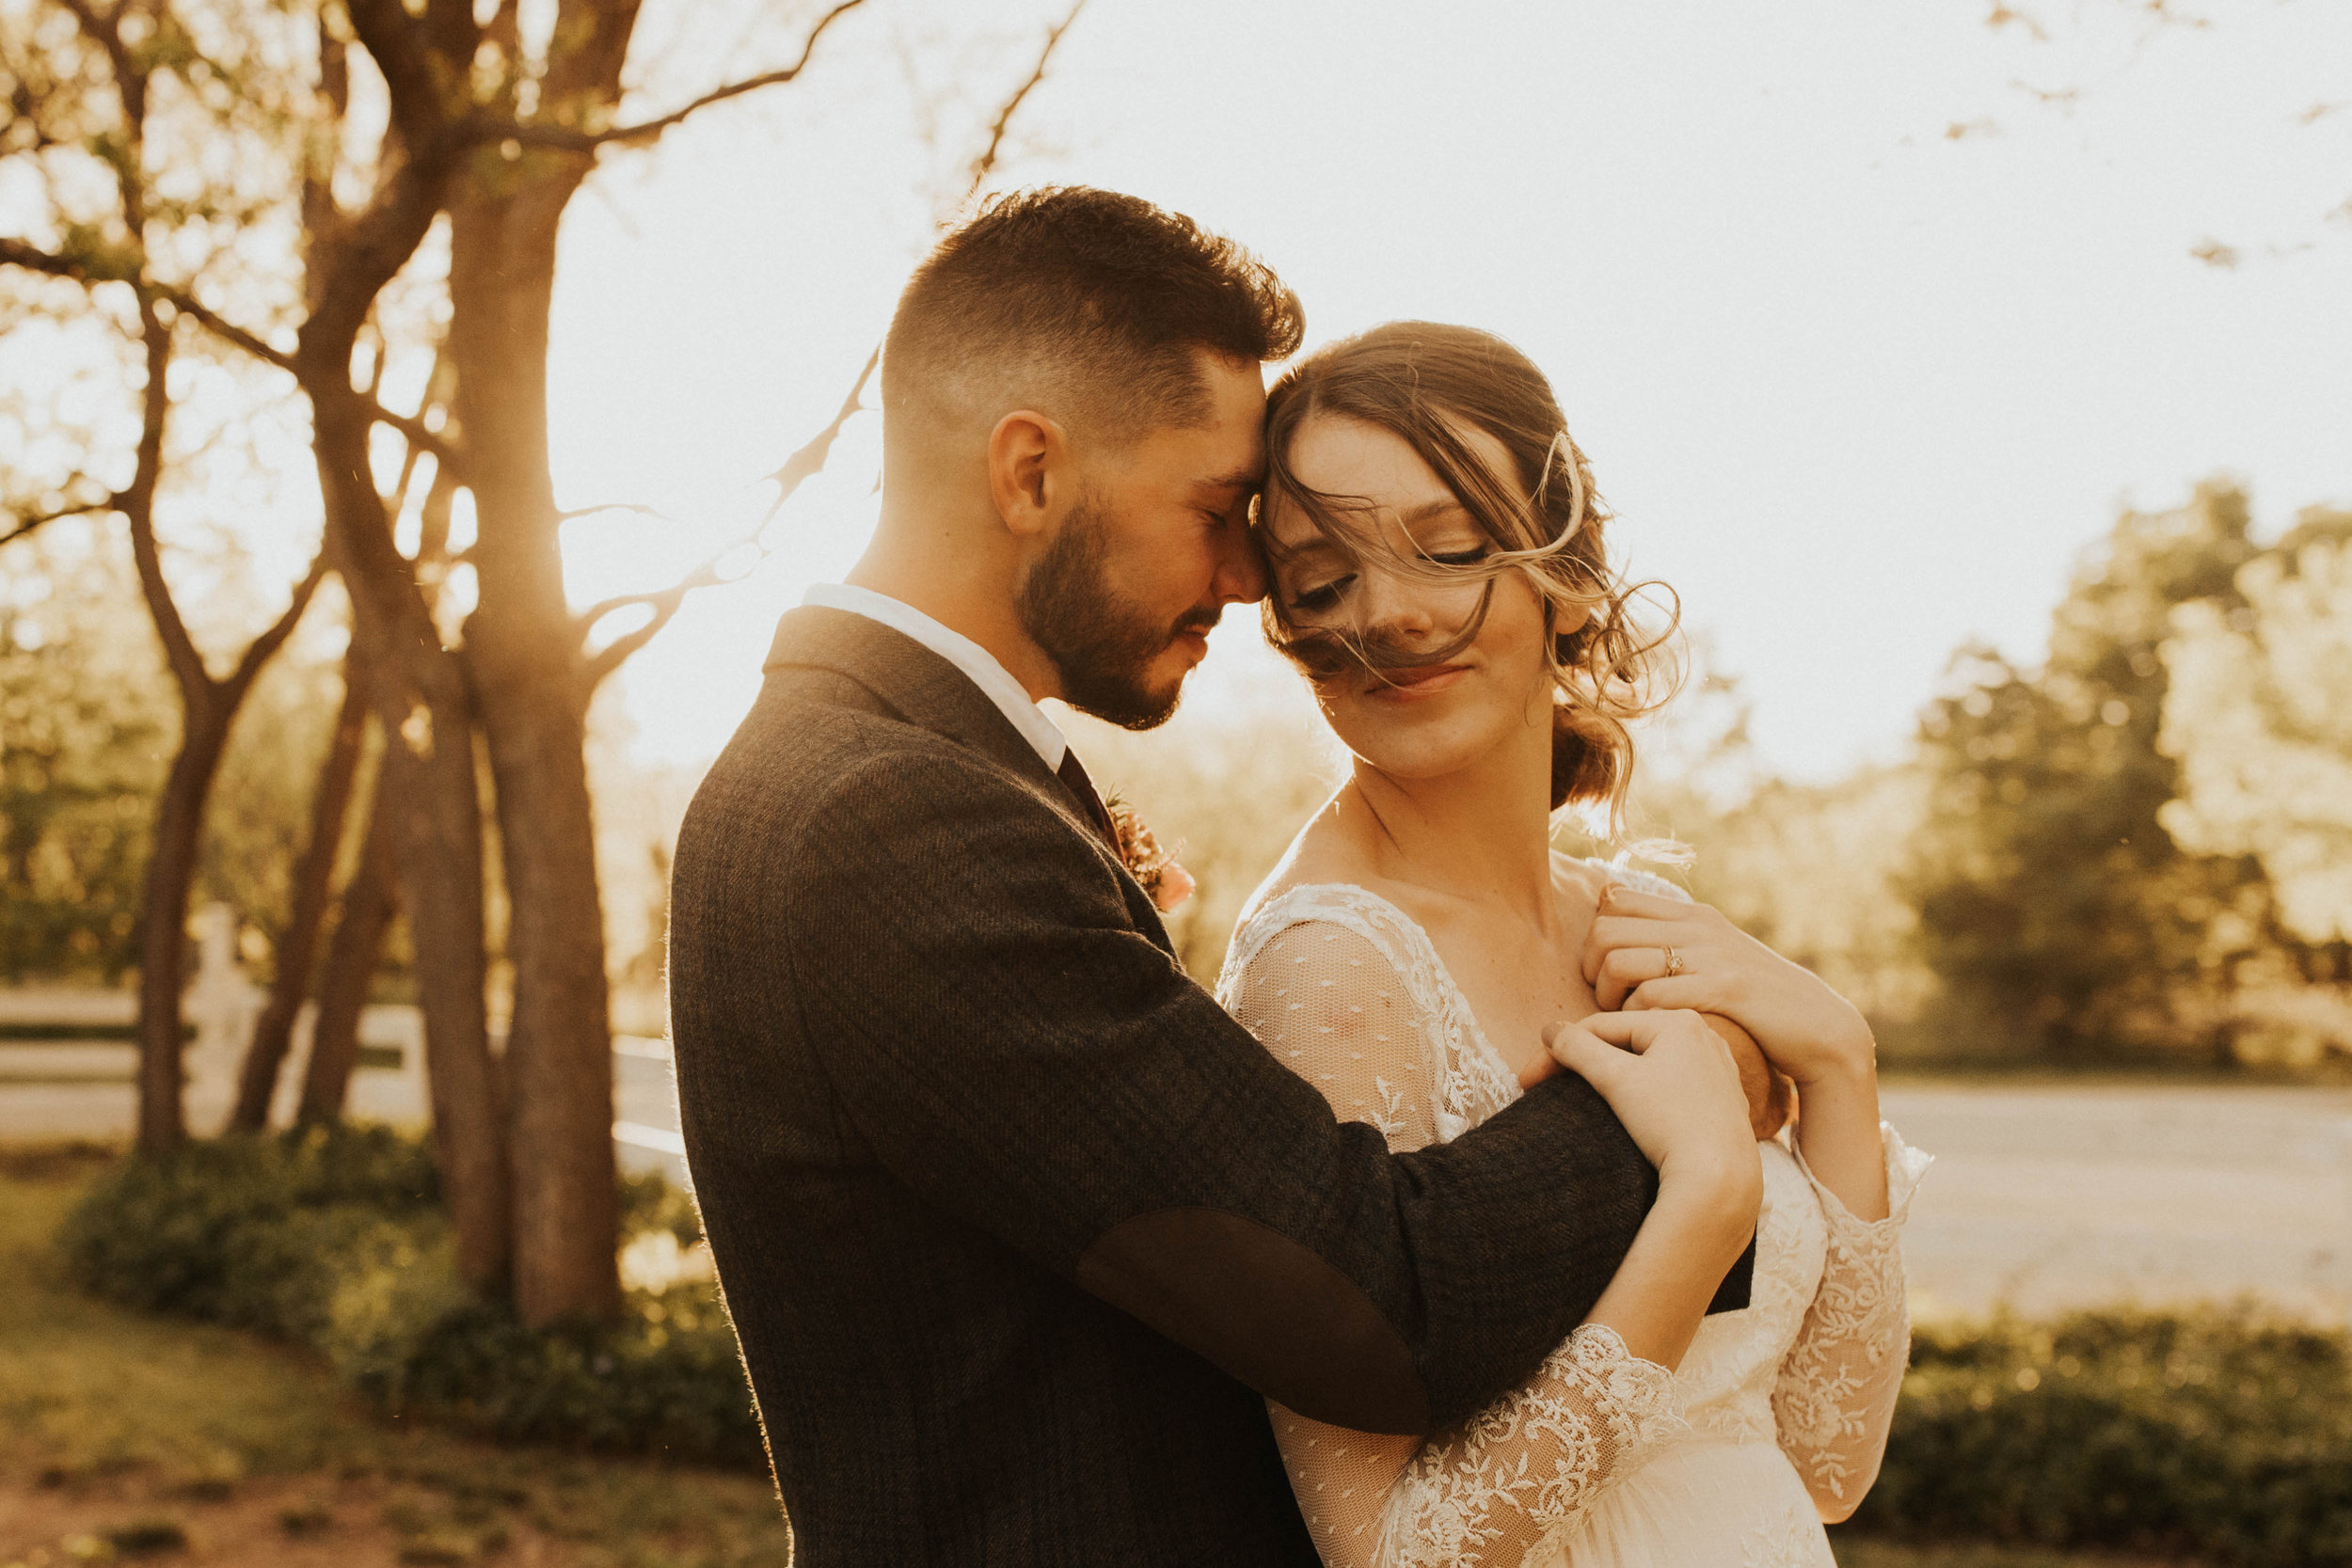 MEG AMORETTE PHOTOGRAPHY - Meg Crabtree is an Abilene & Austin-based photographer with golden tones and intimate vibes. She's perfect for capturing the adventurous spirit.Weddings start at $2,900.